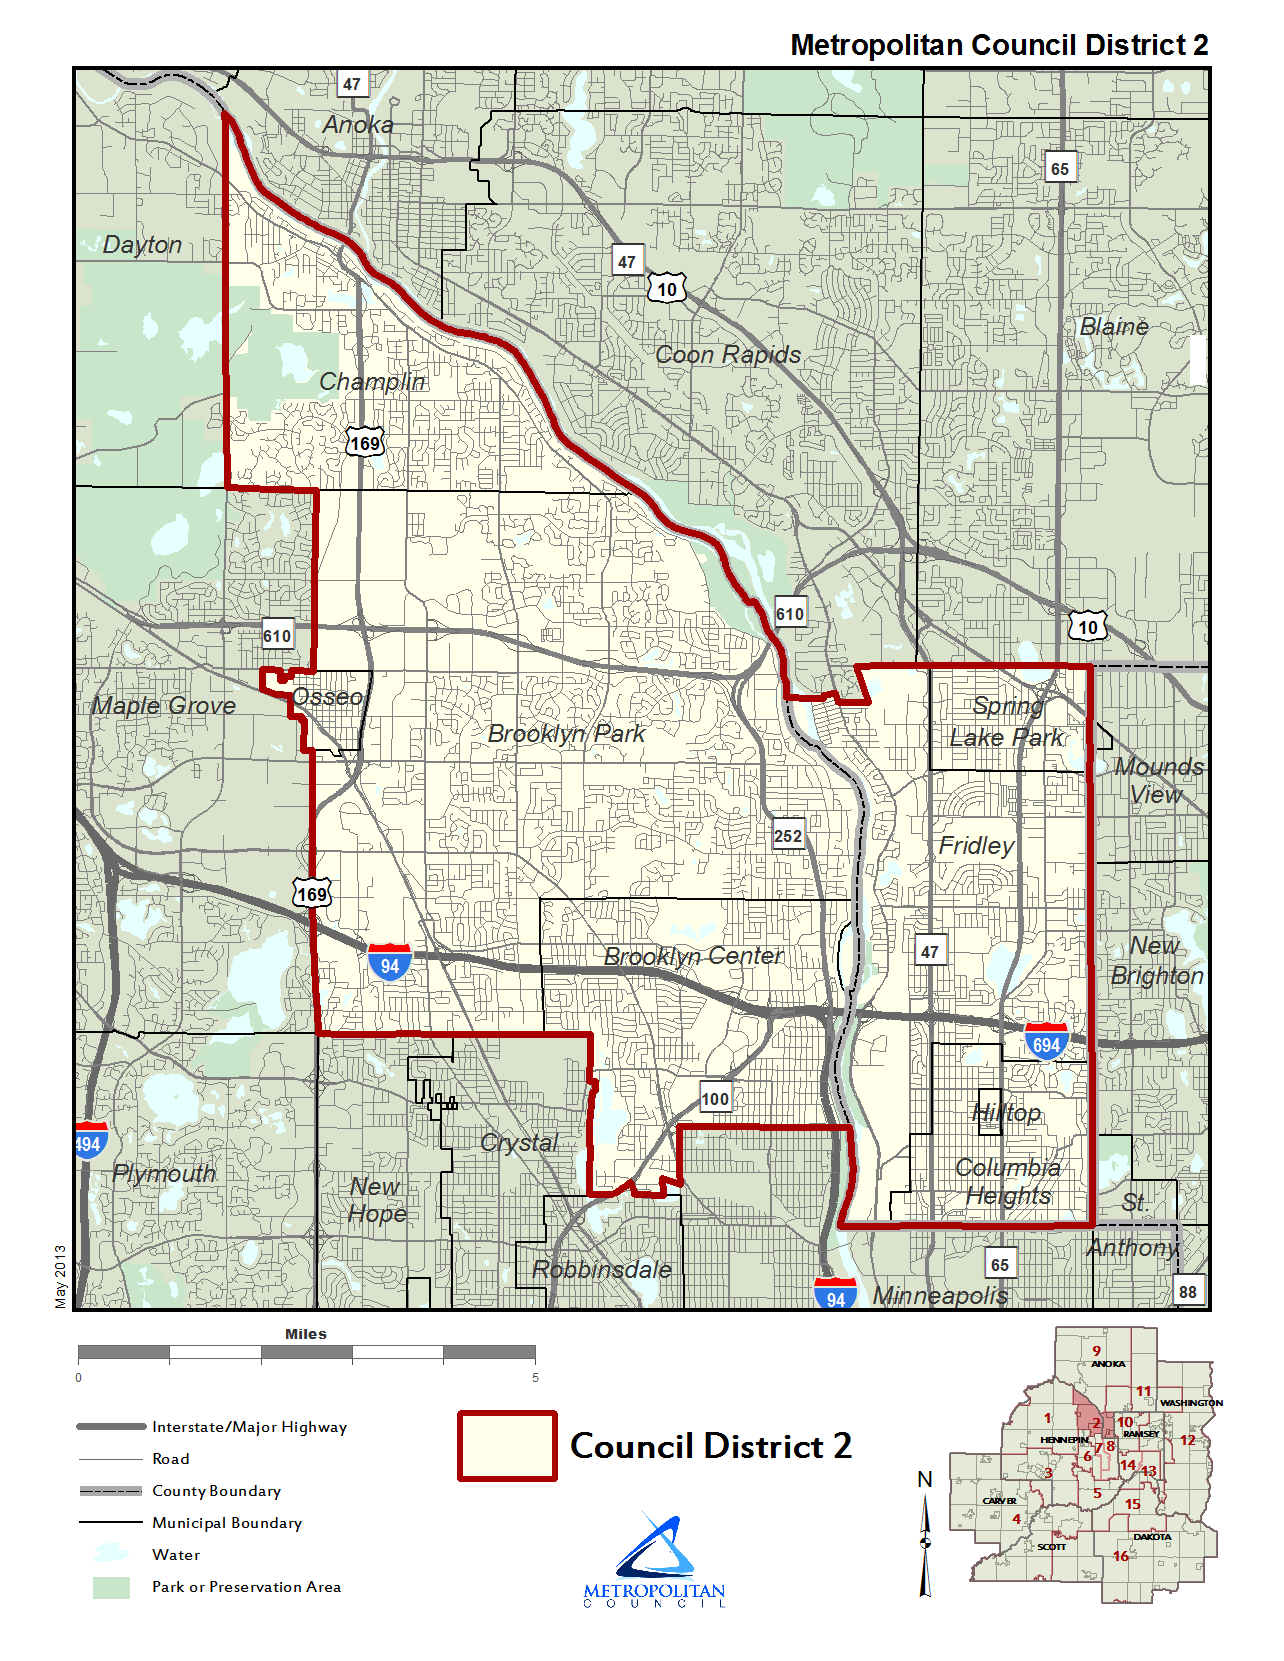 Council District 2 map